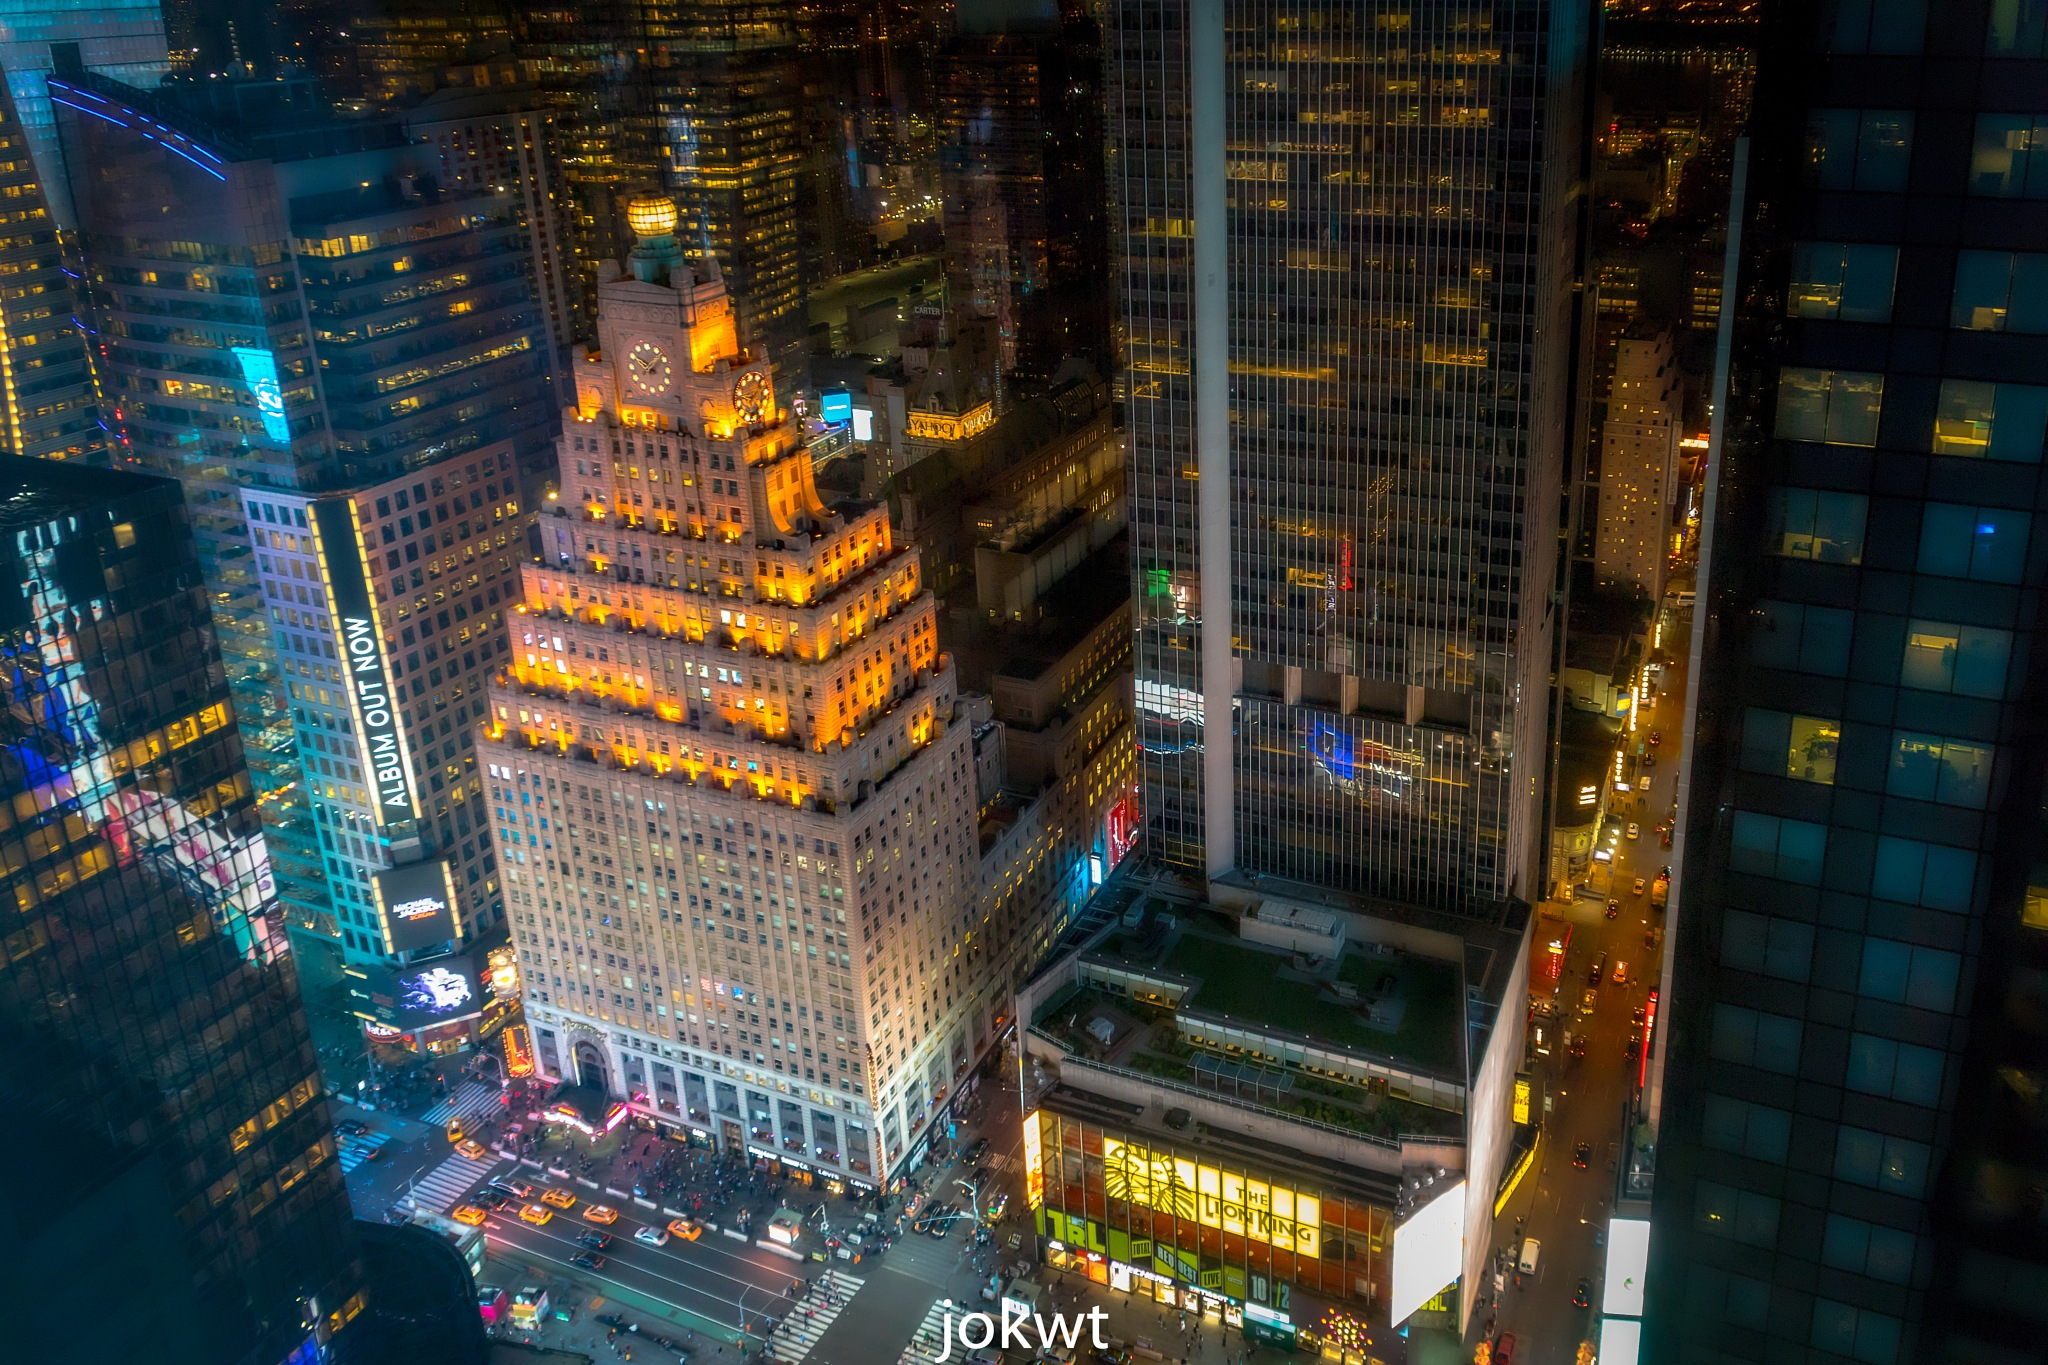 TIME SQUARE - NY- 2 by Y.Allugman